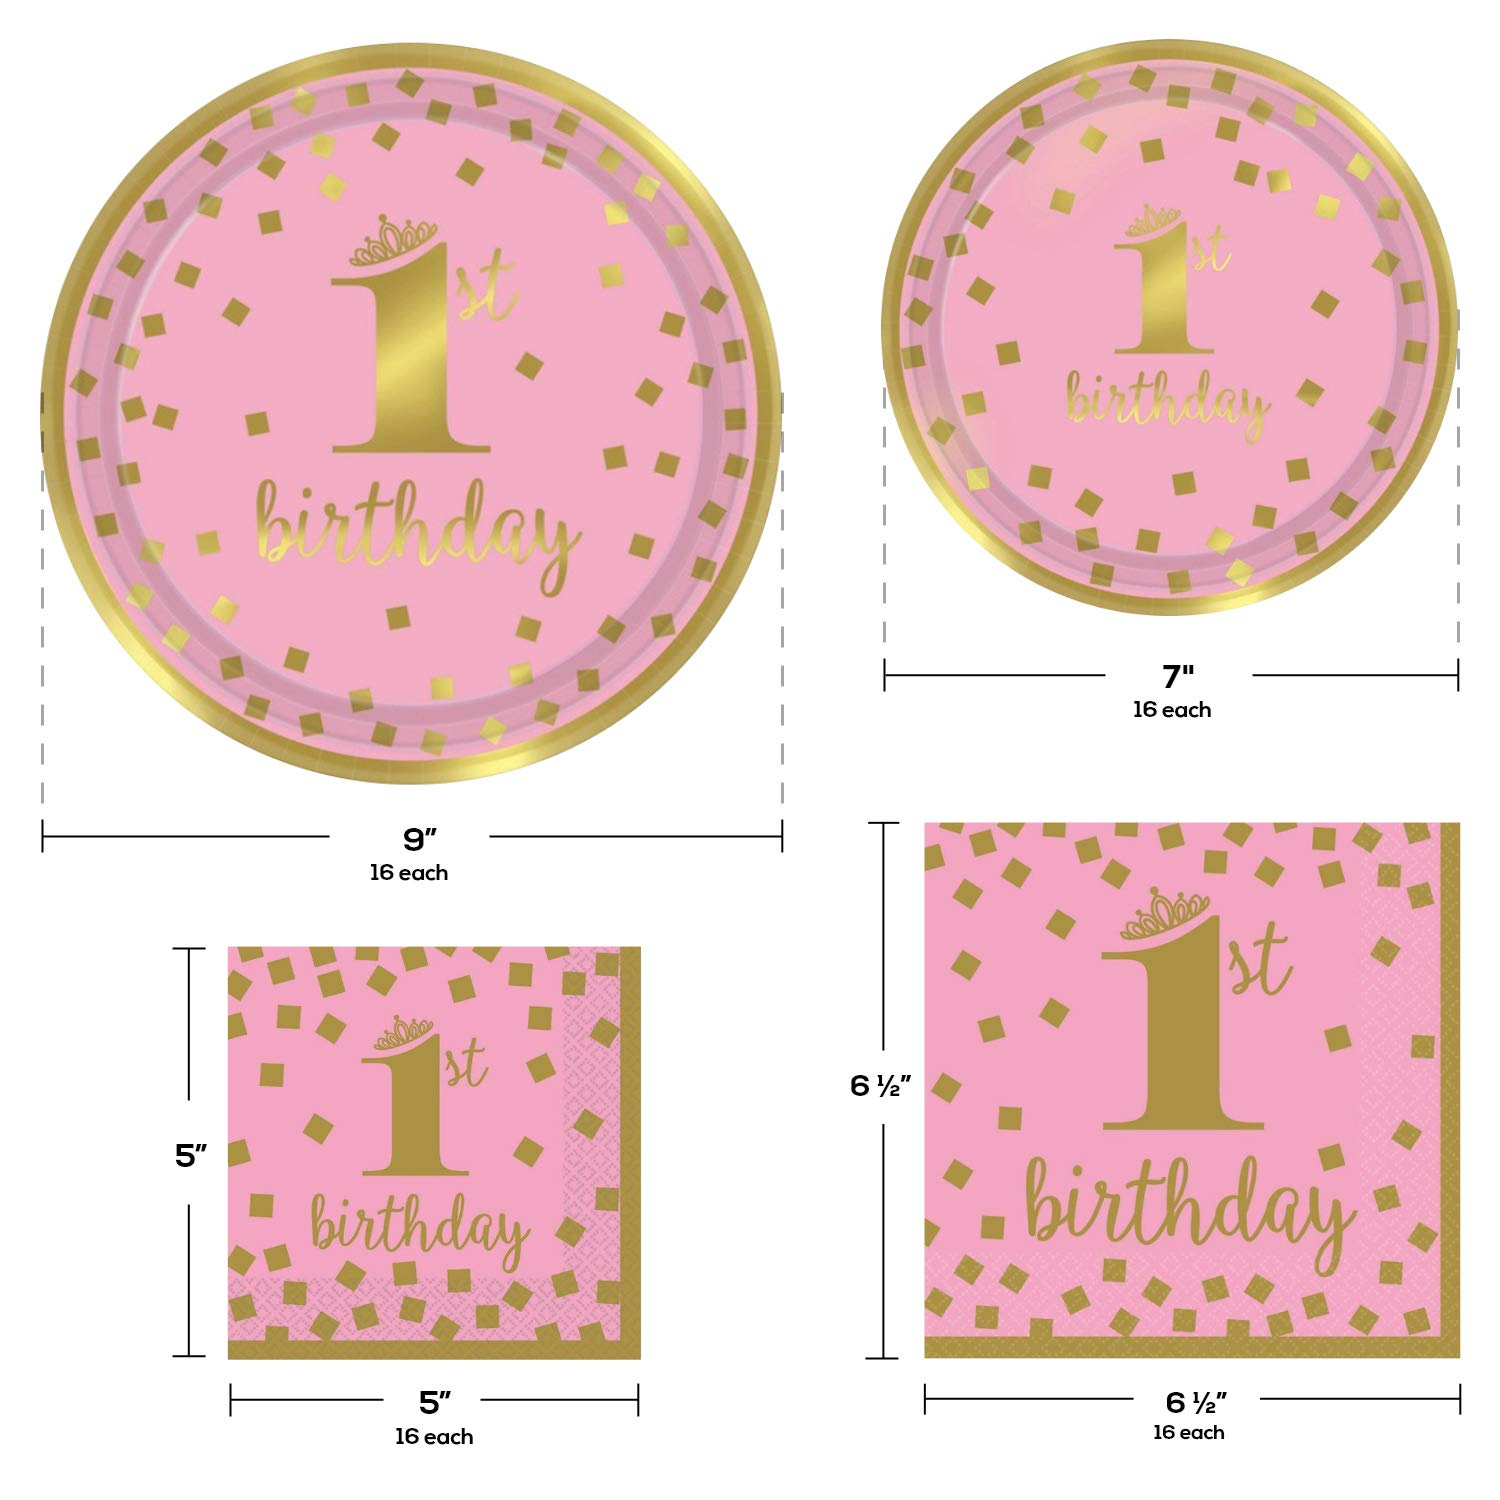 1st Birthday Girl Party Supplies, Pink and Gold Design, Bundle of 4 Items: Dinner Plates, Dessert Plates, Lunch Napkins and Beverage Napkins by TwoTwelve Products (Image #2)